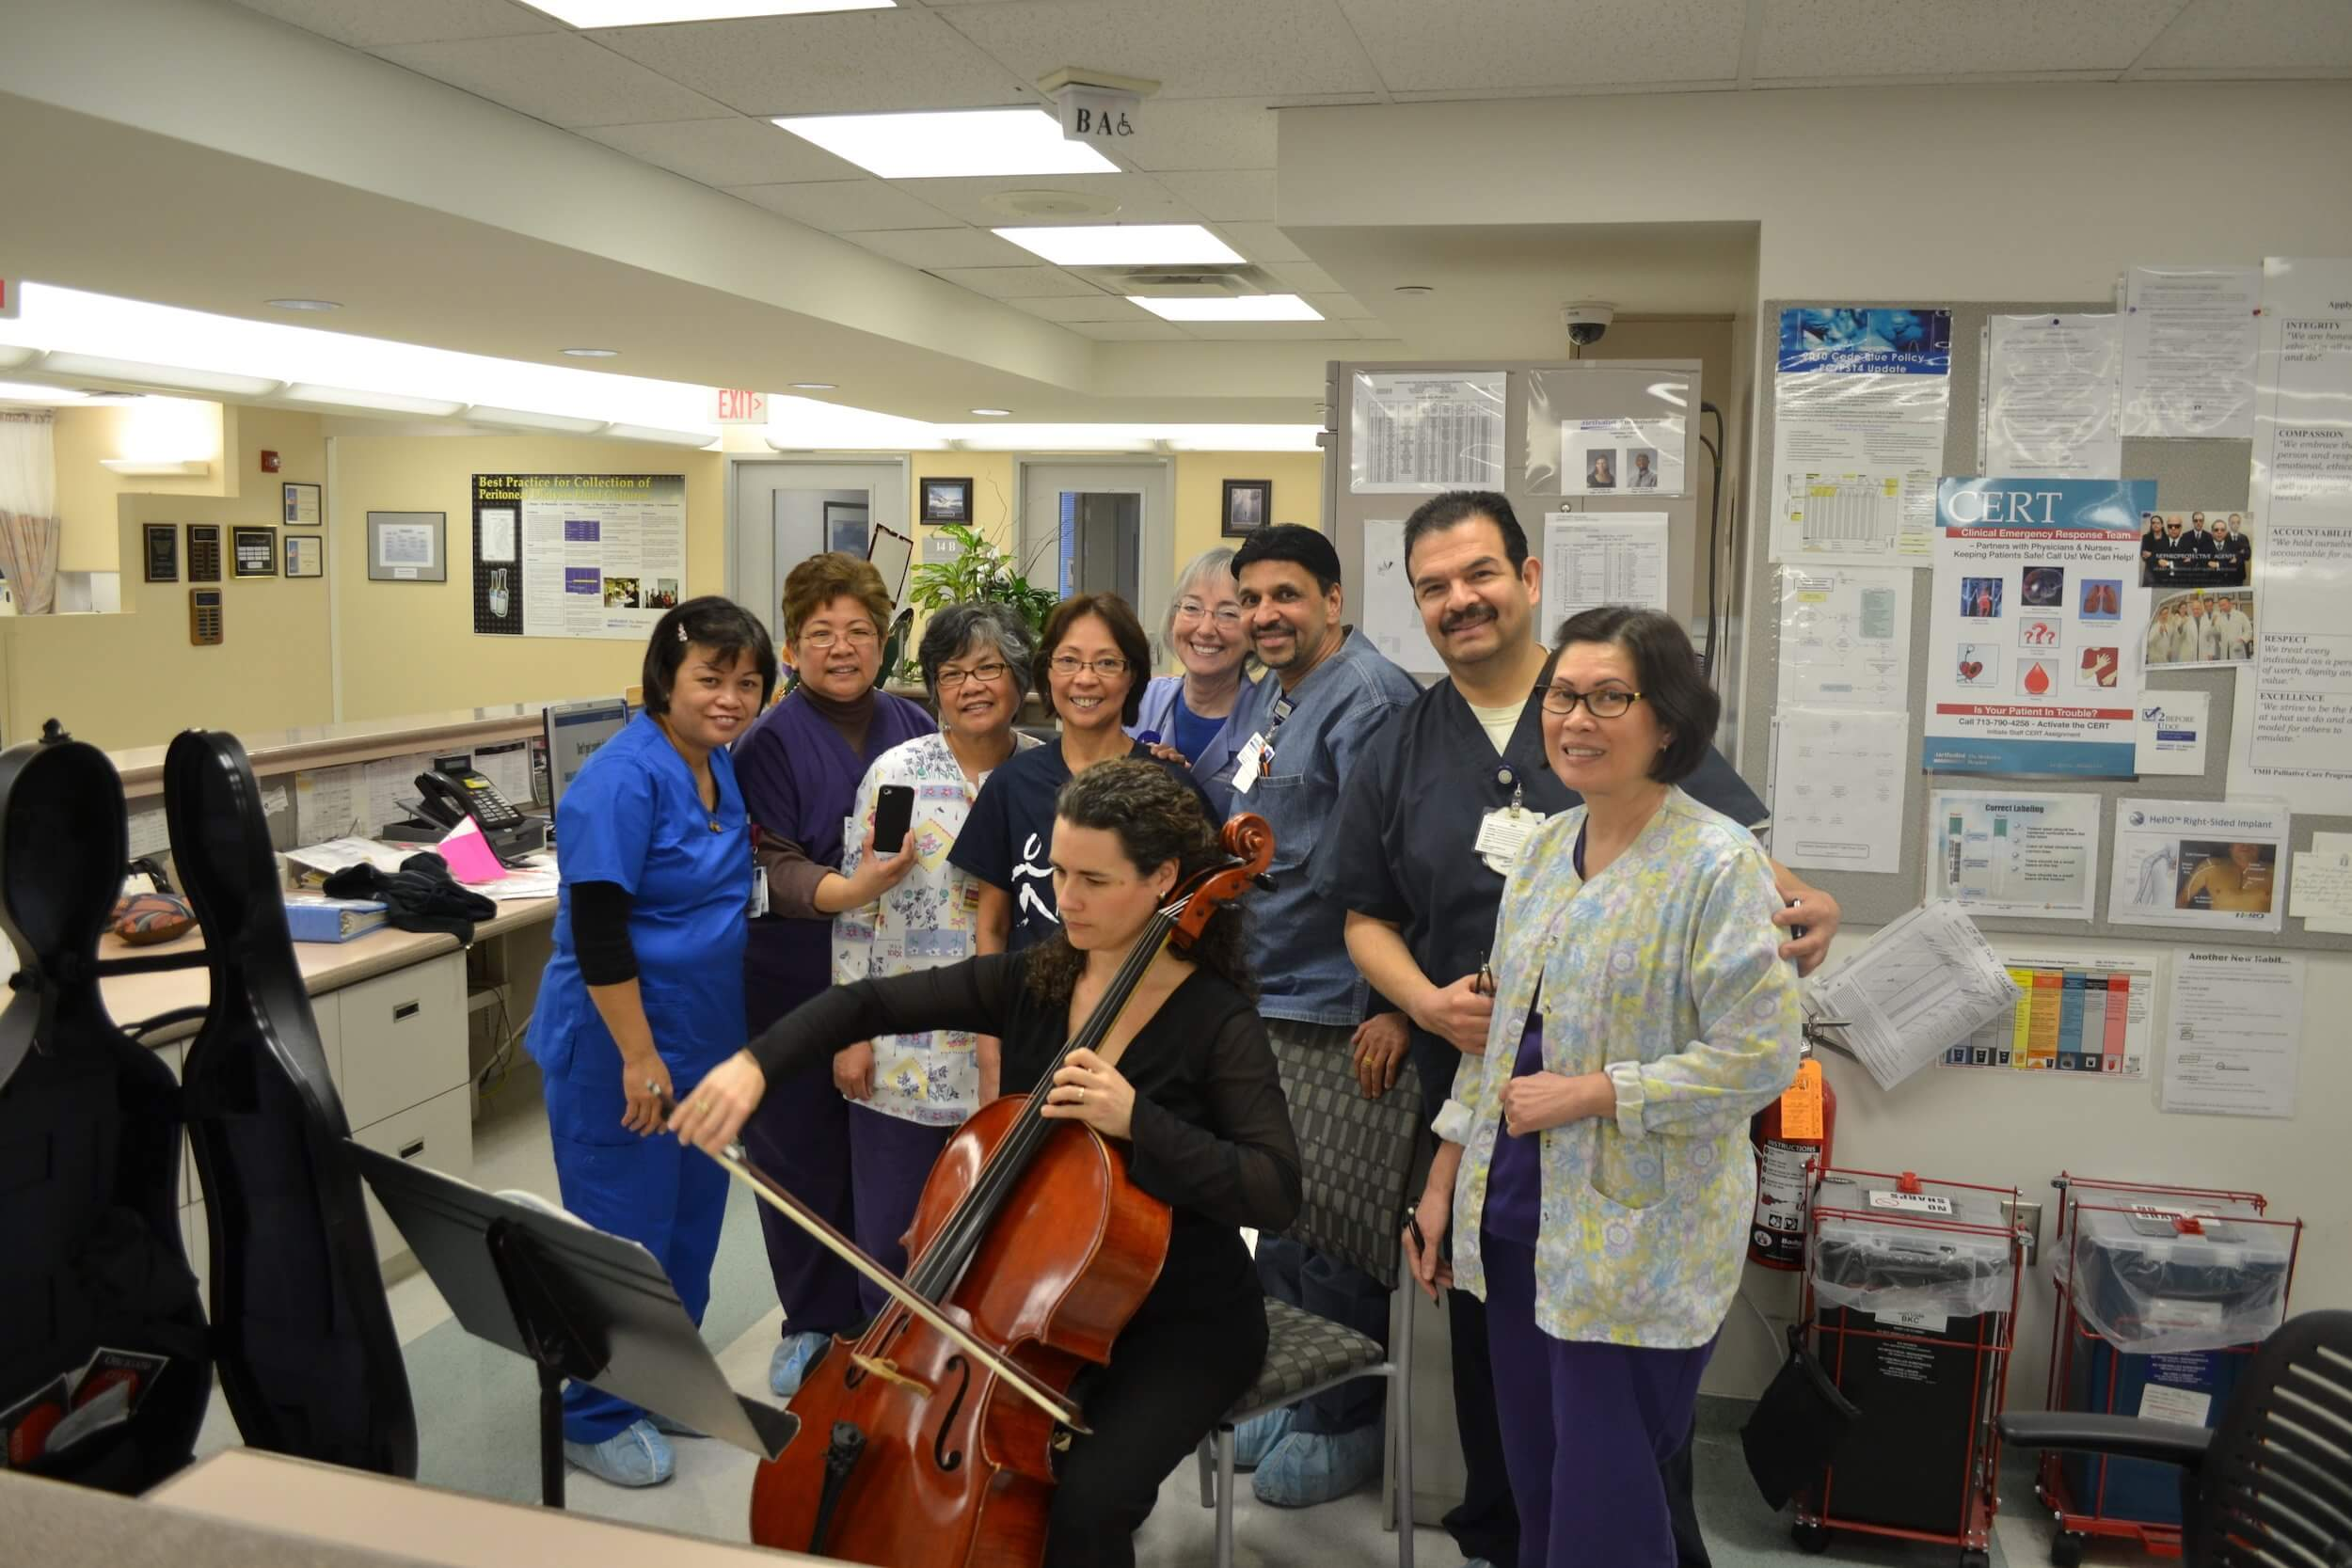 A visiting musician performs at a nursing station to support the environment of care for patients and staff. (Photo Courtesy of Houston Methodist)